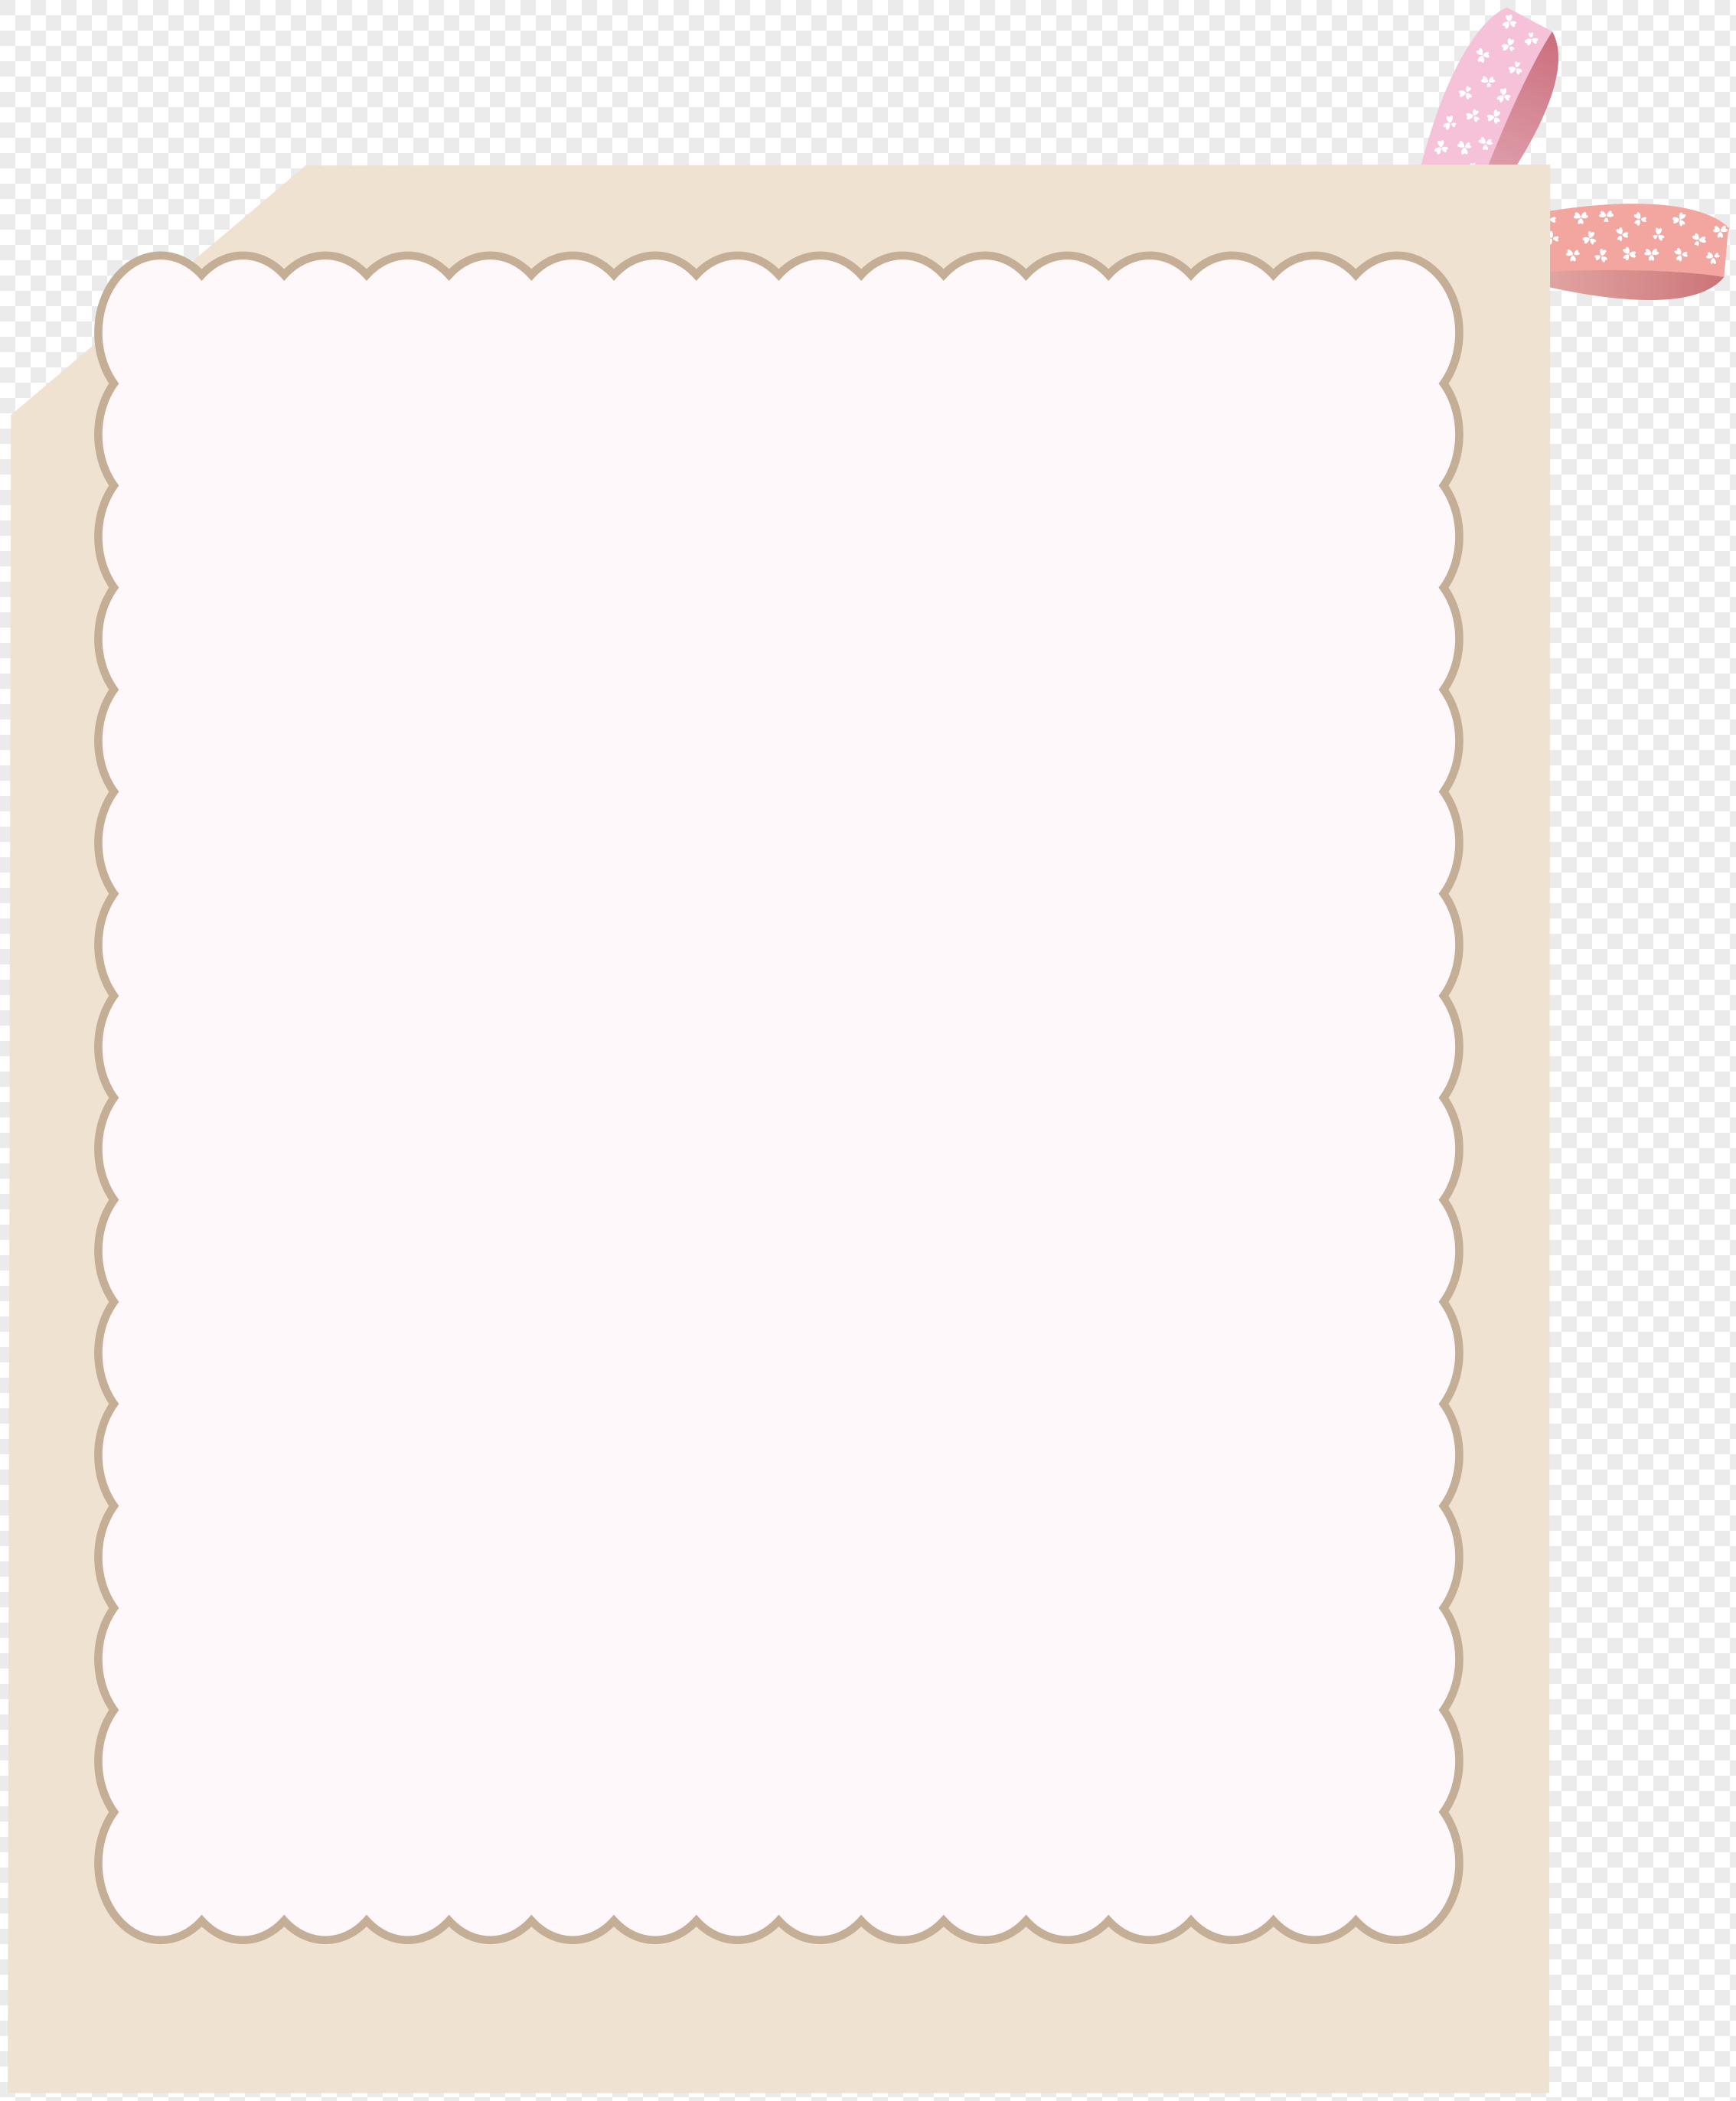 Hand drawn cartoon pink border photo frame png image_picture free ...